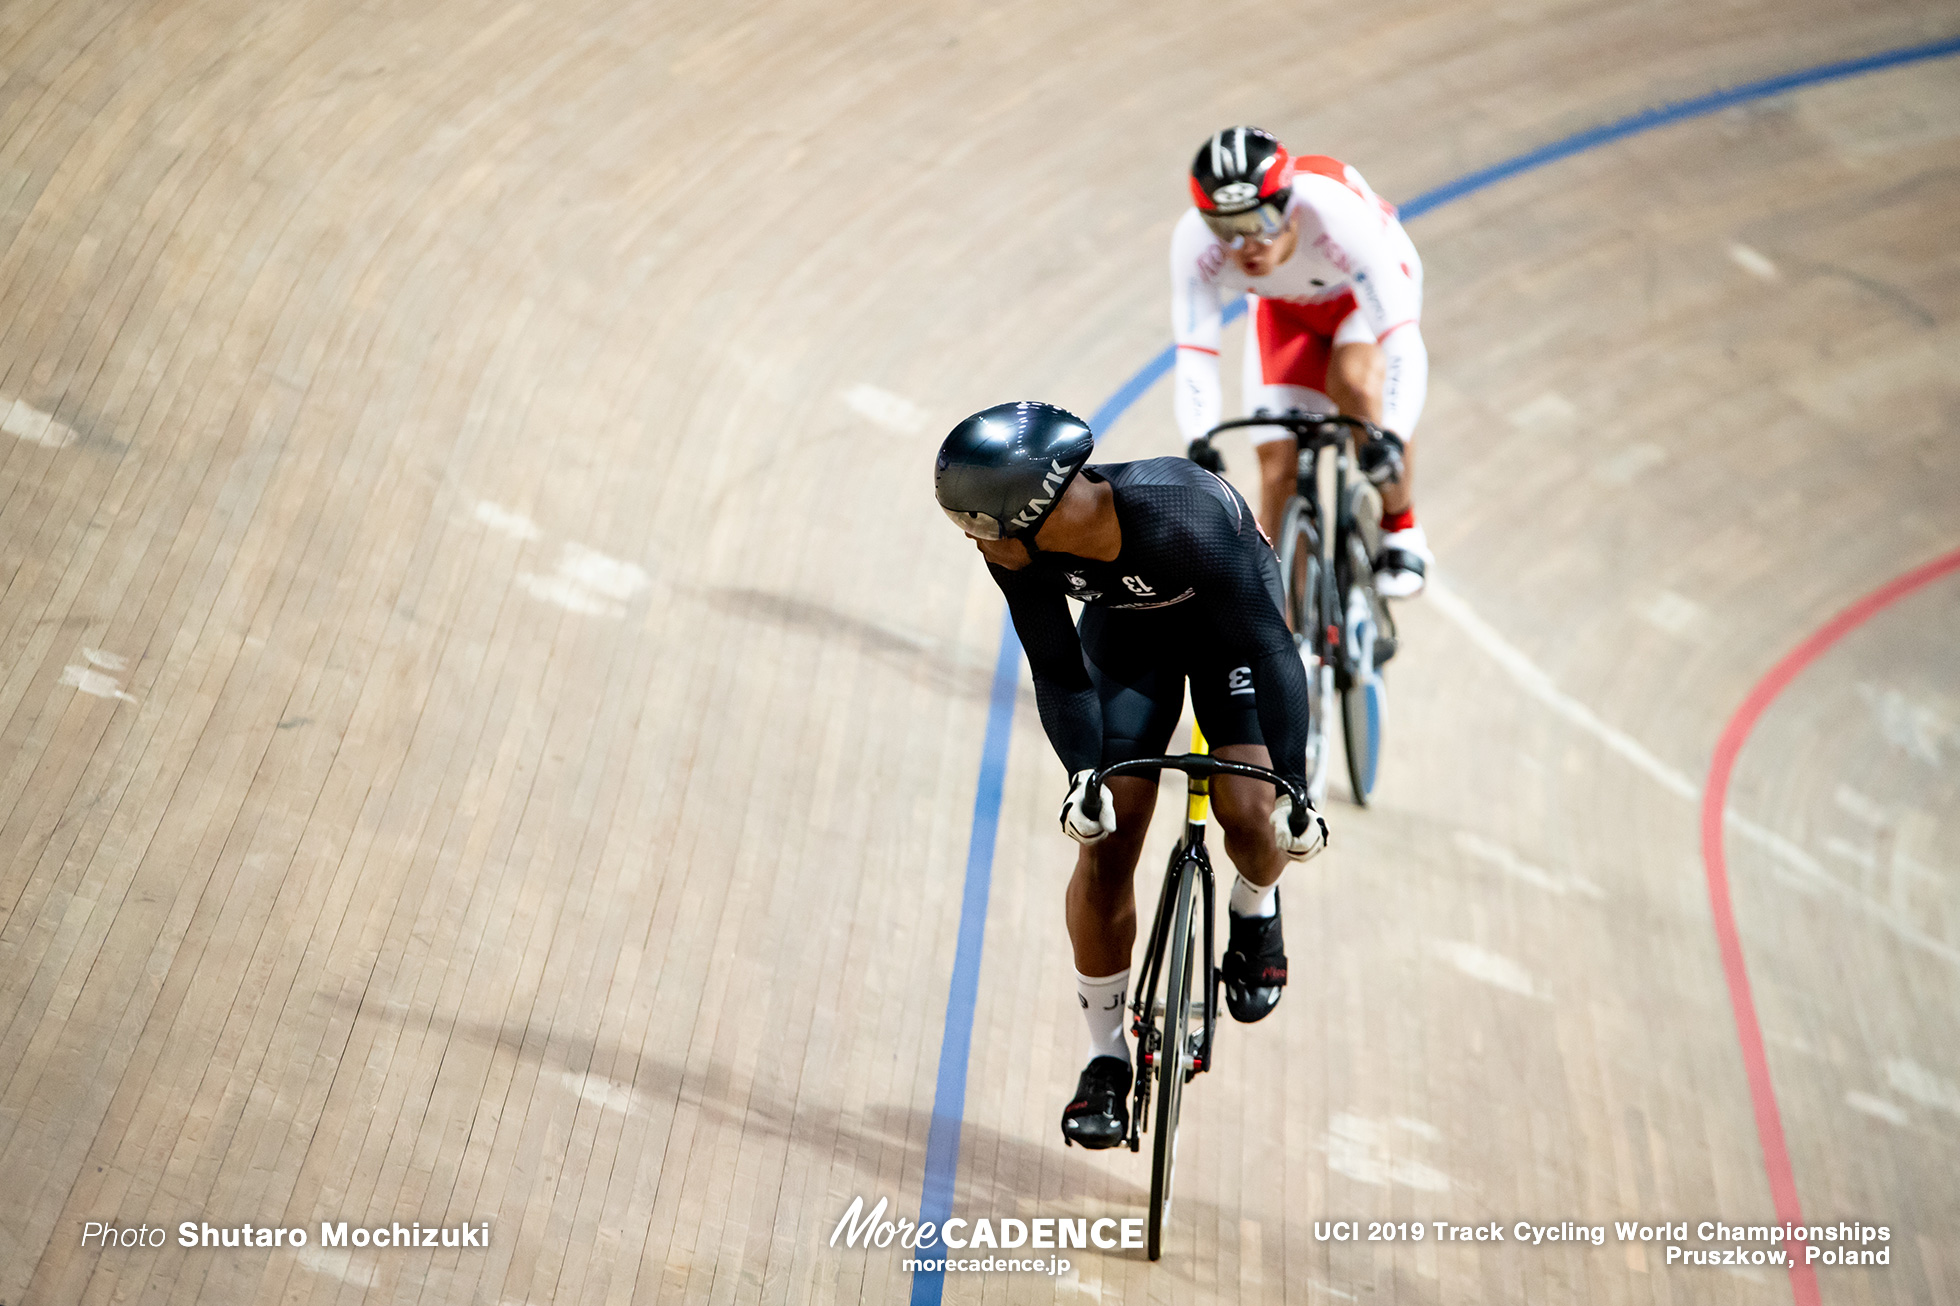 Men's Sprint 1/16 Final / 2019 Track Cycling World Championships Pruszków, Poland